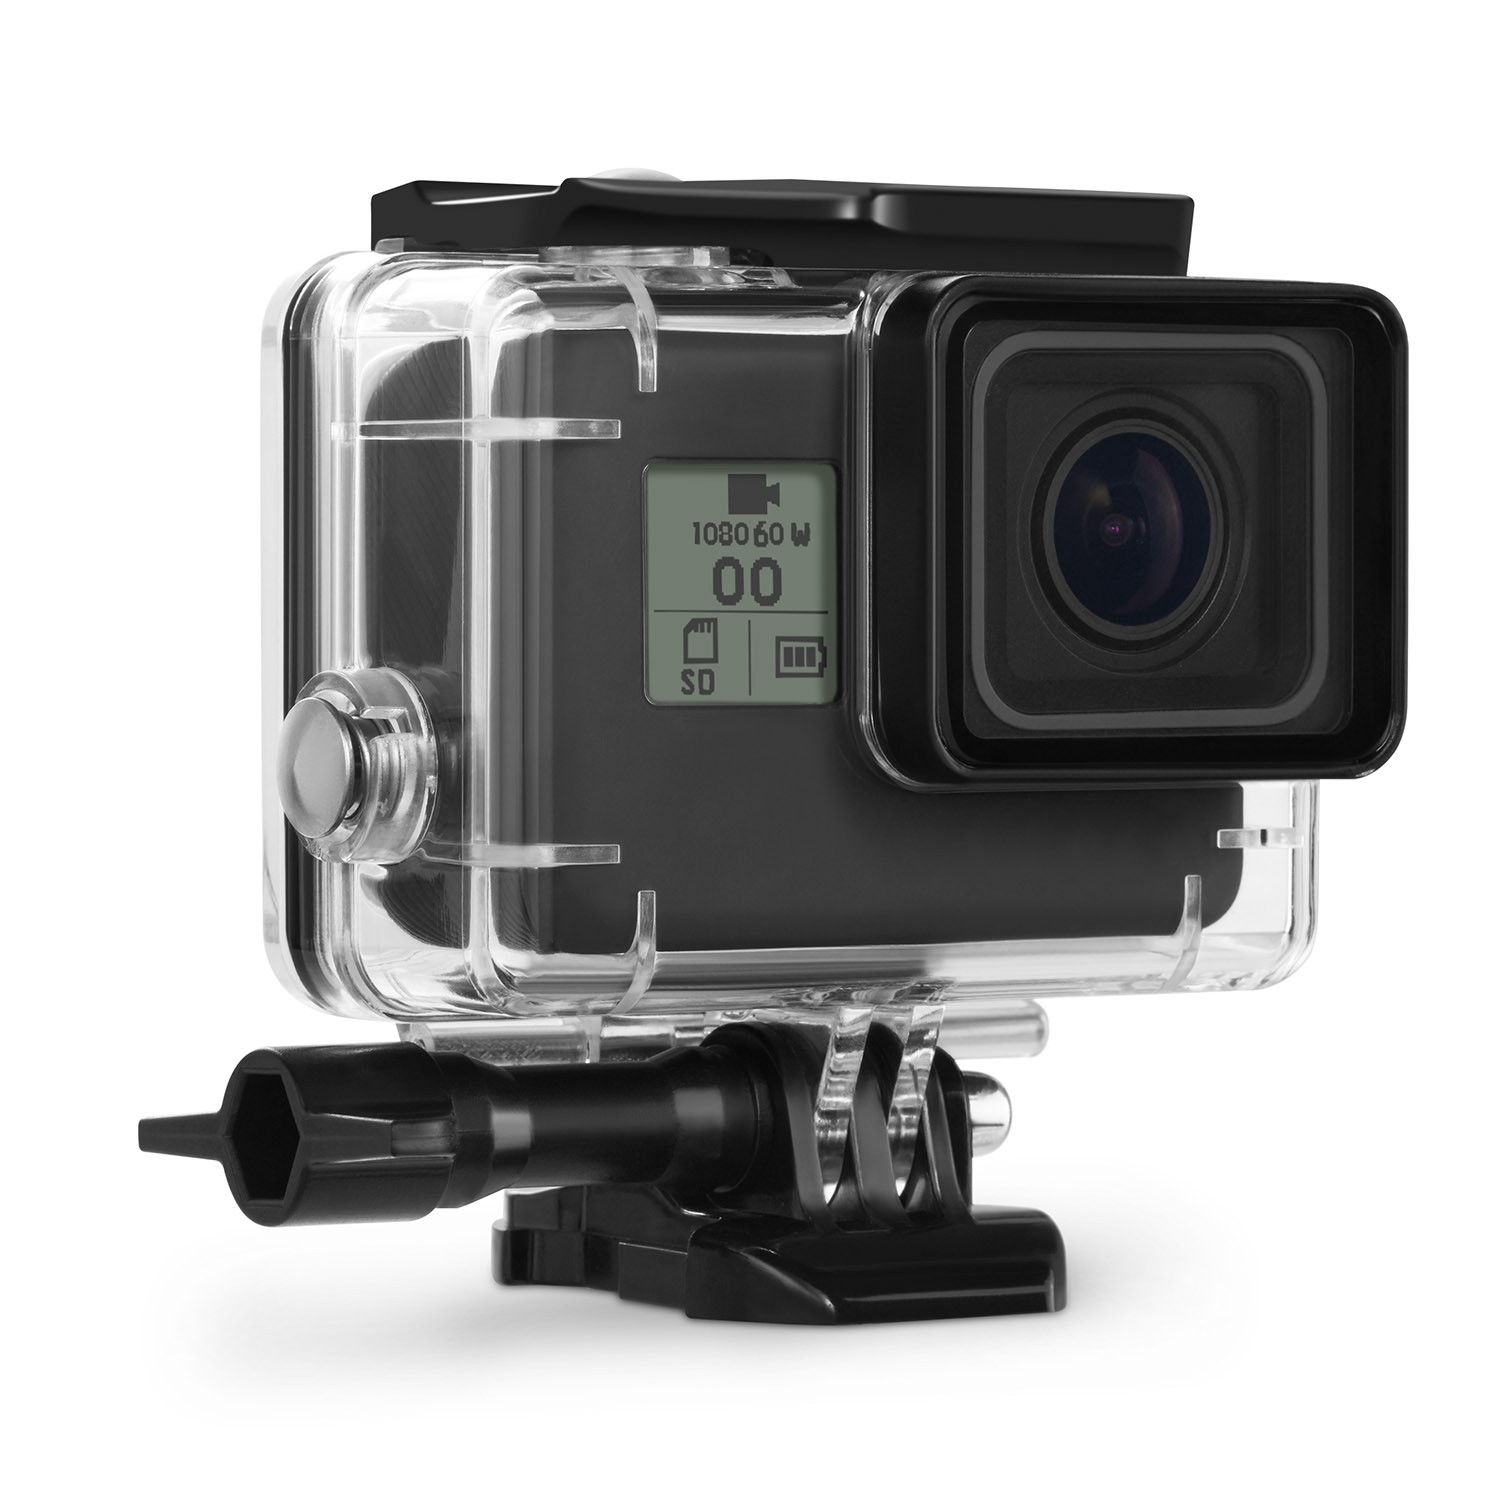 Kupton Waterproof Case for GoPro Hero 7 Black Hero 5 / 6 Accessories Housing Case Diving Protective Housing Shell 45m for Go Pro Hero7 Hero6 Hero5 Hero 2018 Action Camera with Bracket Accessories